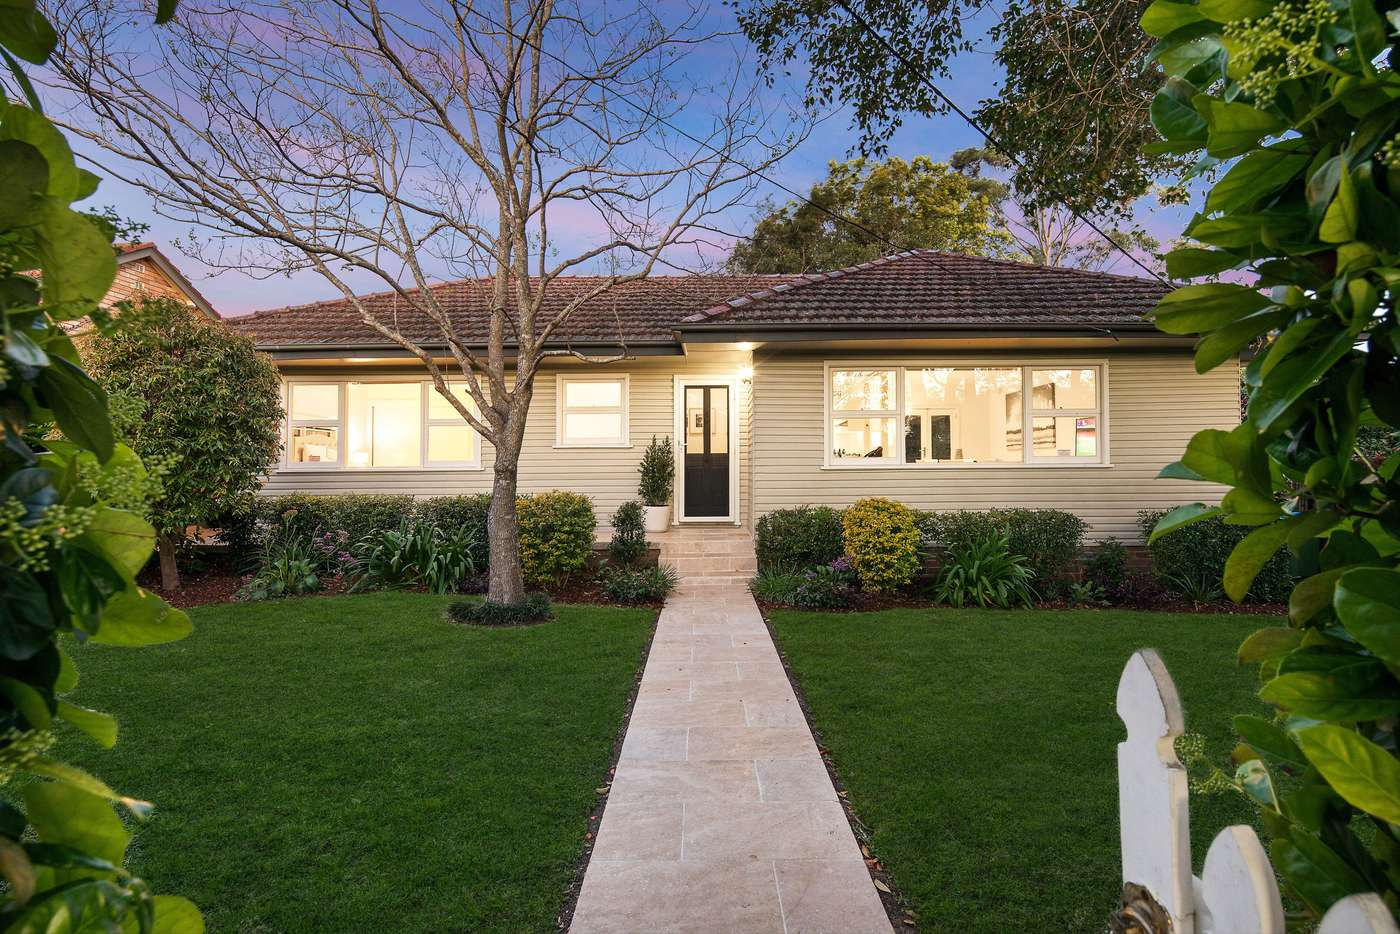 Main view of Homely house listing, 28 Wyuna Road, West Pymble NSW 2073